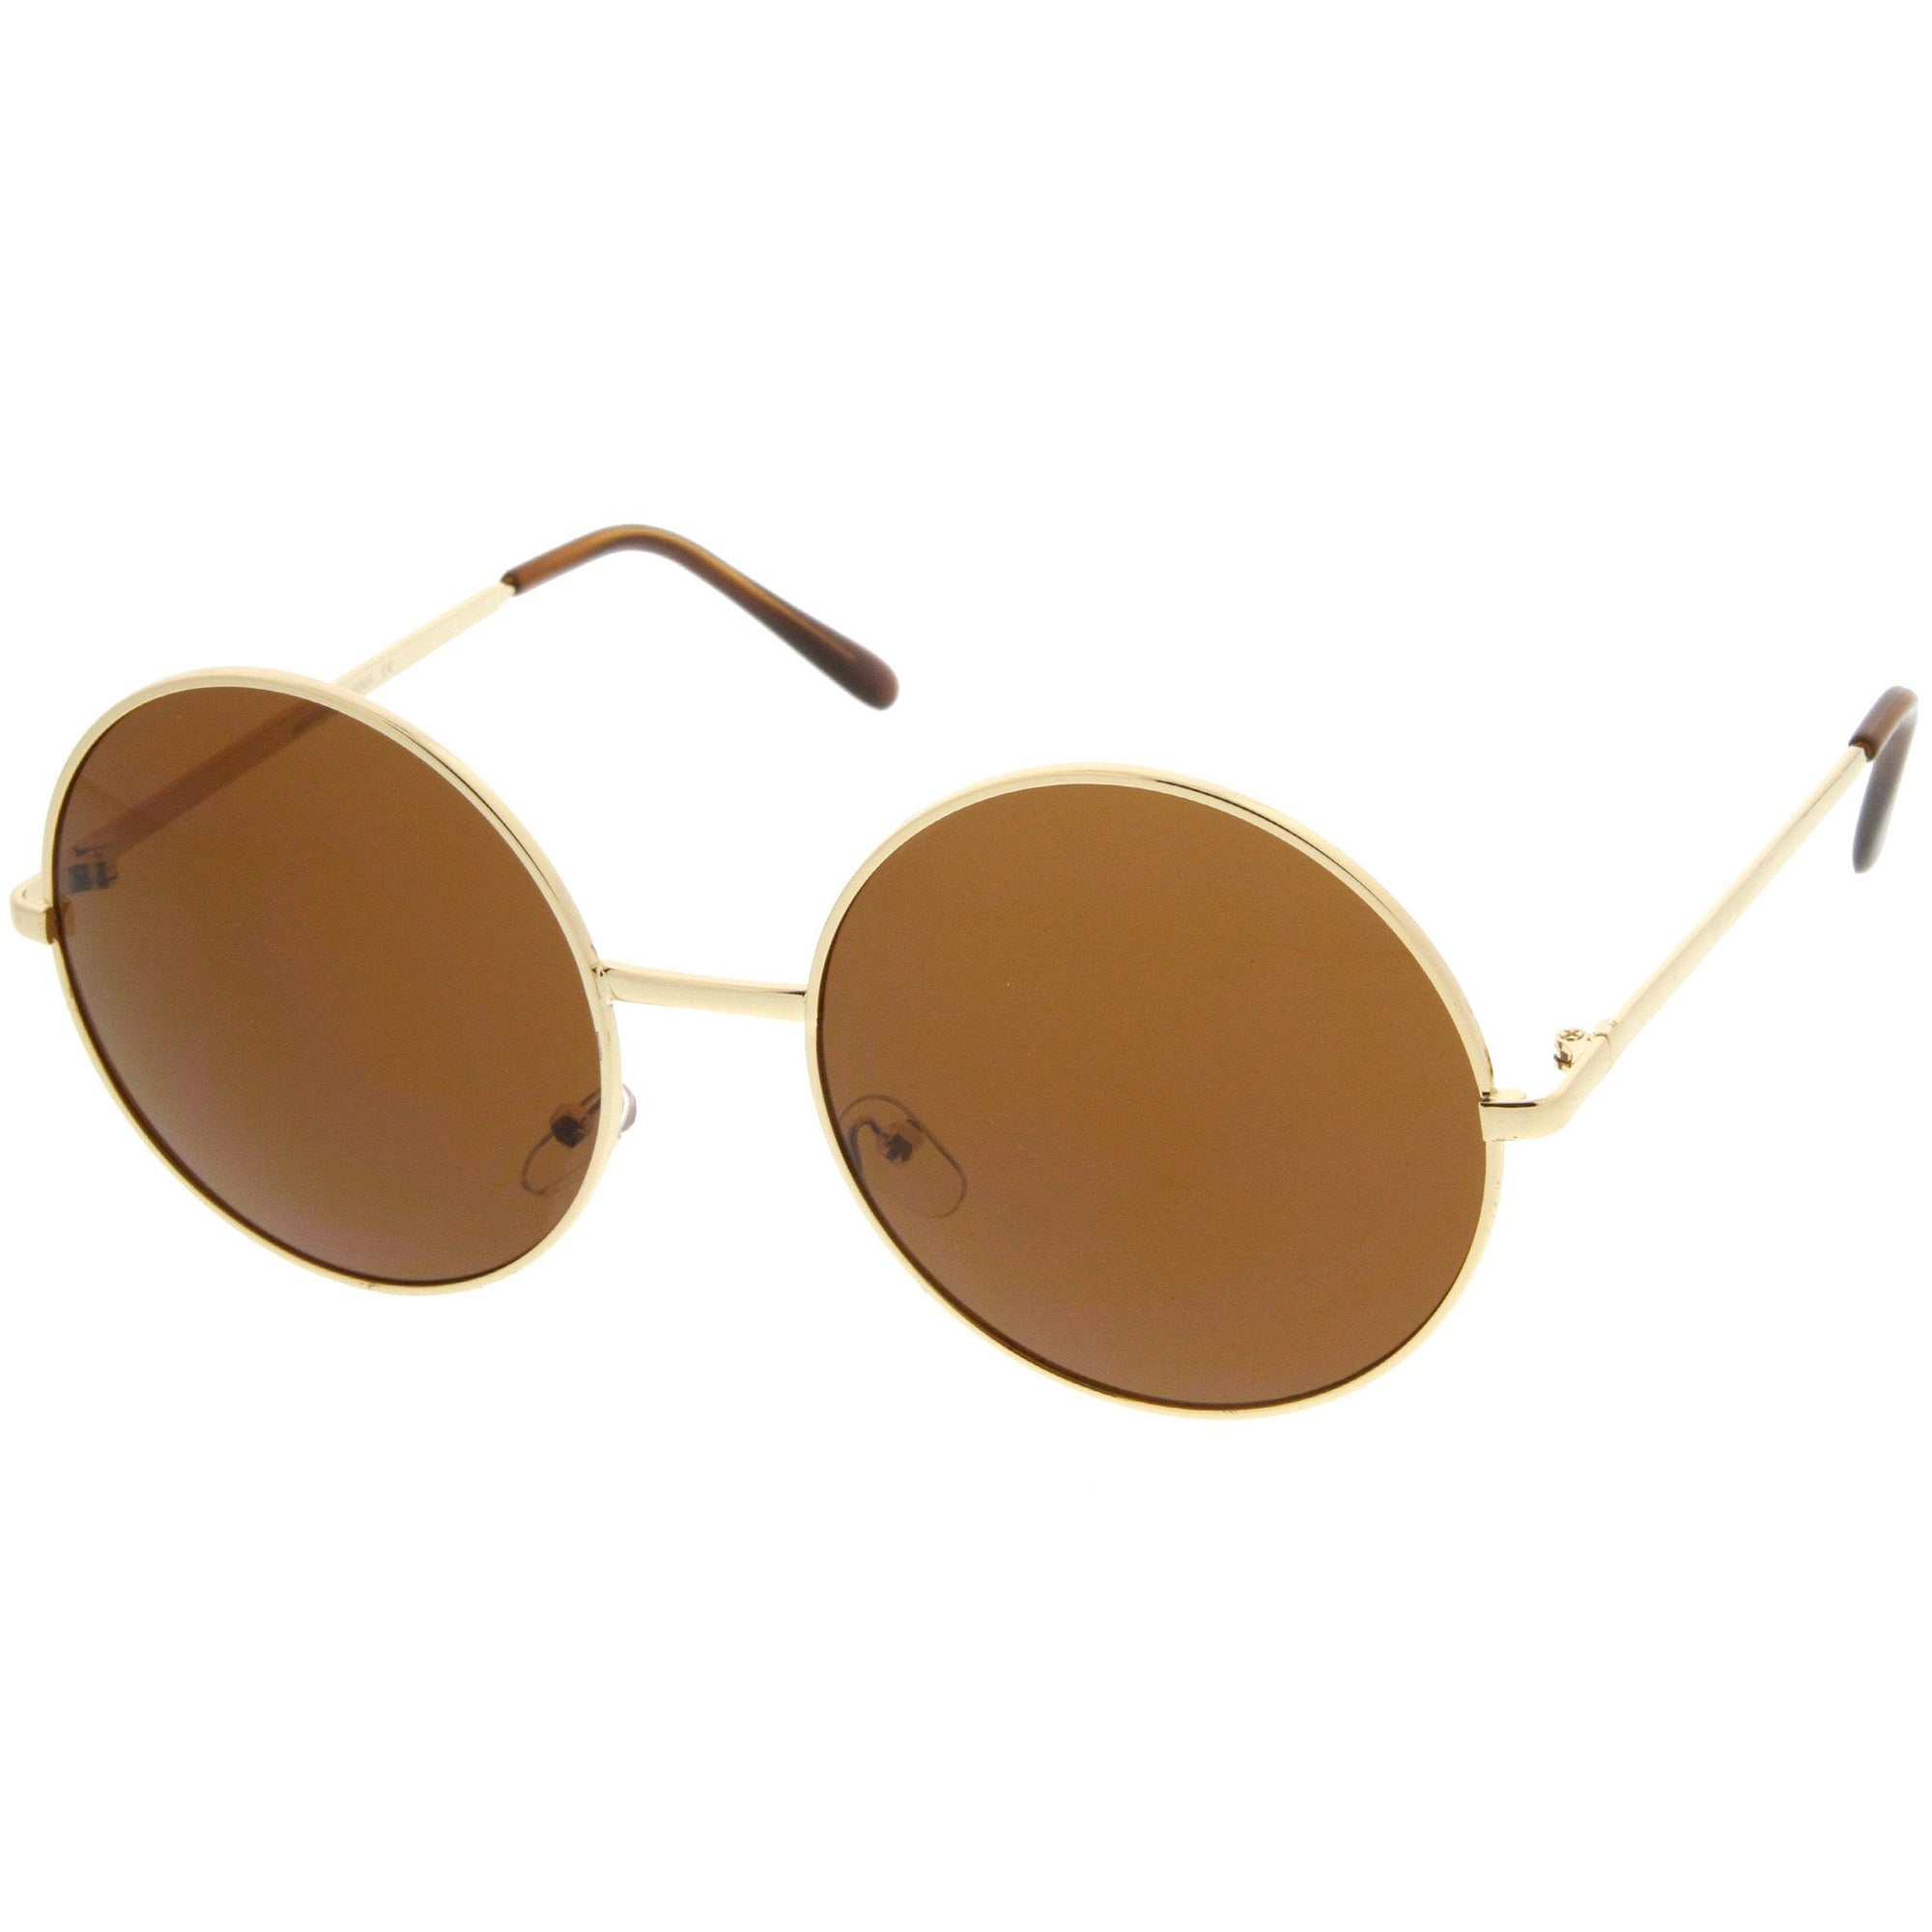 2aeb9eb0ba Oversize Vintage Inspired Metal Round Circle Sunglasses 8370